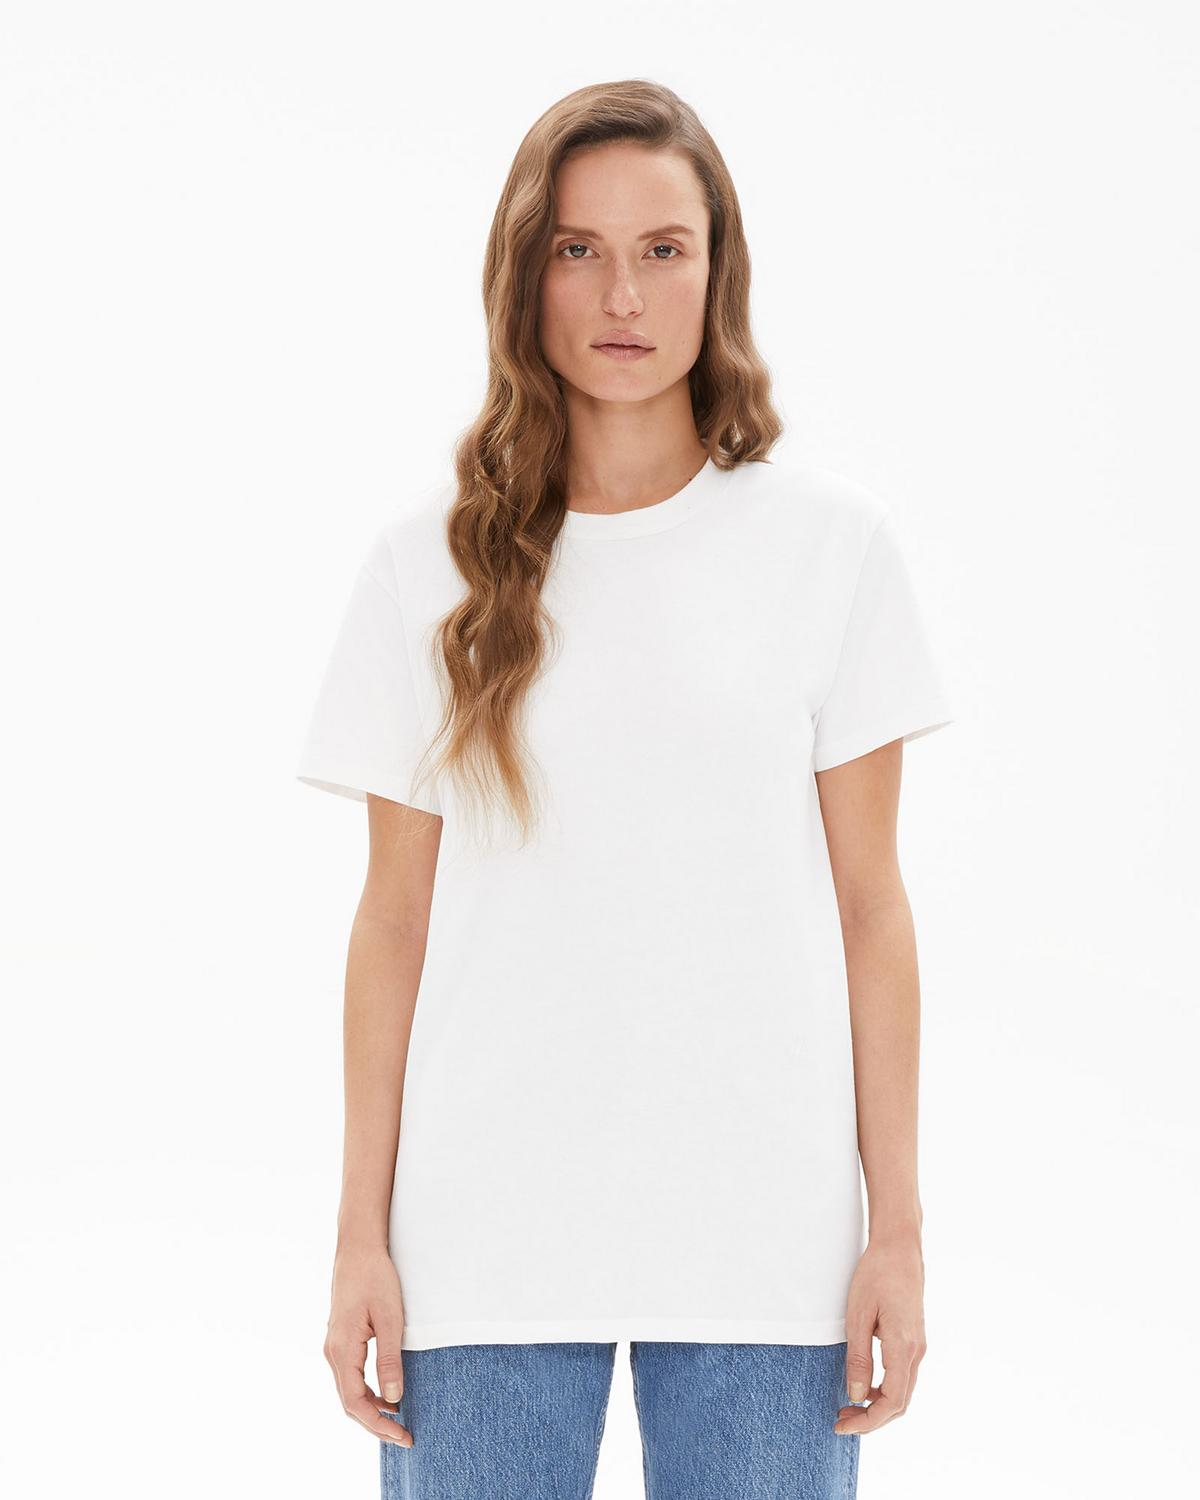 HL MONOGRAM Little Tee